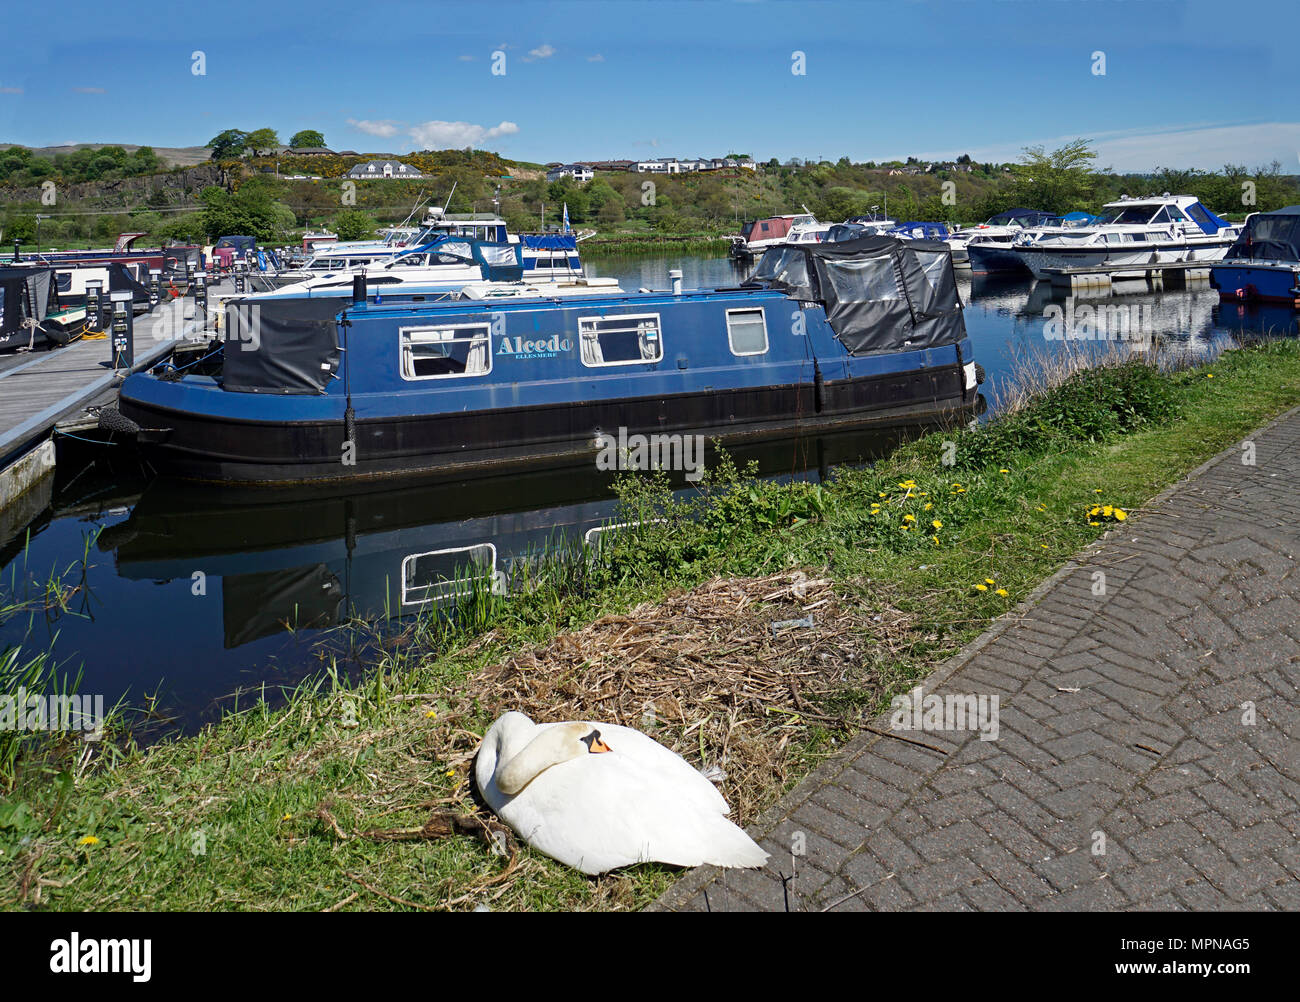 Boats moored in the basin on the Forth and Clyde Canal at village Auchinstarry near Kilsyth North Lanarkshire Scotland UK with swan sleeping front - Stock Image